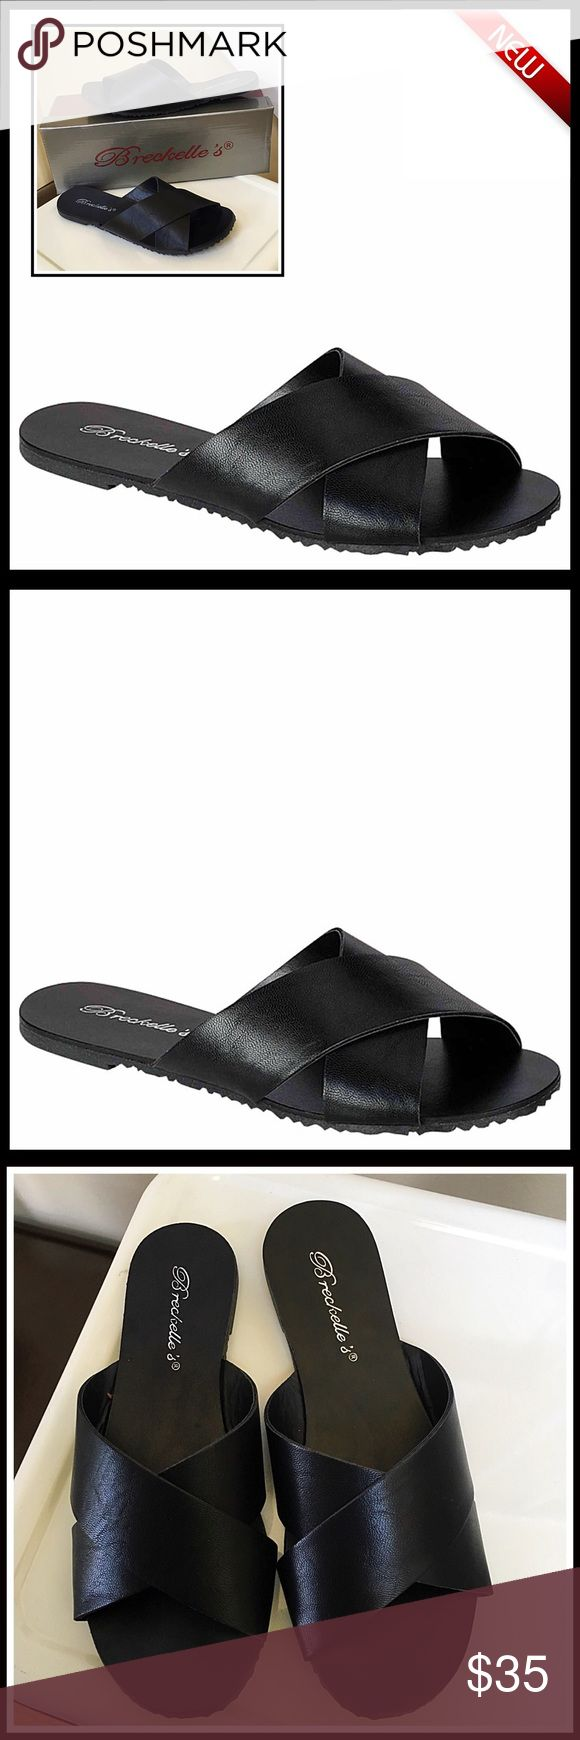 "⭐️⭐️ Slip-On SANDALS Flats Slides 💟NEW WITH TAGS💟  Slip-On SANDALS Flats Vegan Leather Look Slides Flip Flops  * Crisscross vamp, wide soft strap   * Ballet flat design  * Textured grip sole   * Open toe and slip on style.  * True to size  * Approx 0.25"" high heel Fabric- manmade upper & sole Color- Black Item# flatform mule gladiator  🚫No Trades🚫 ✅ Offers Considered*✅ *Please use the blue 'offer' button to submit an offer. Breckelles Shoes Flats & Loafers"